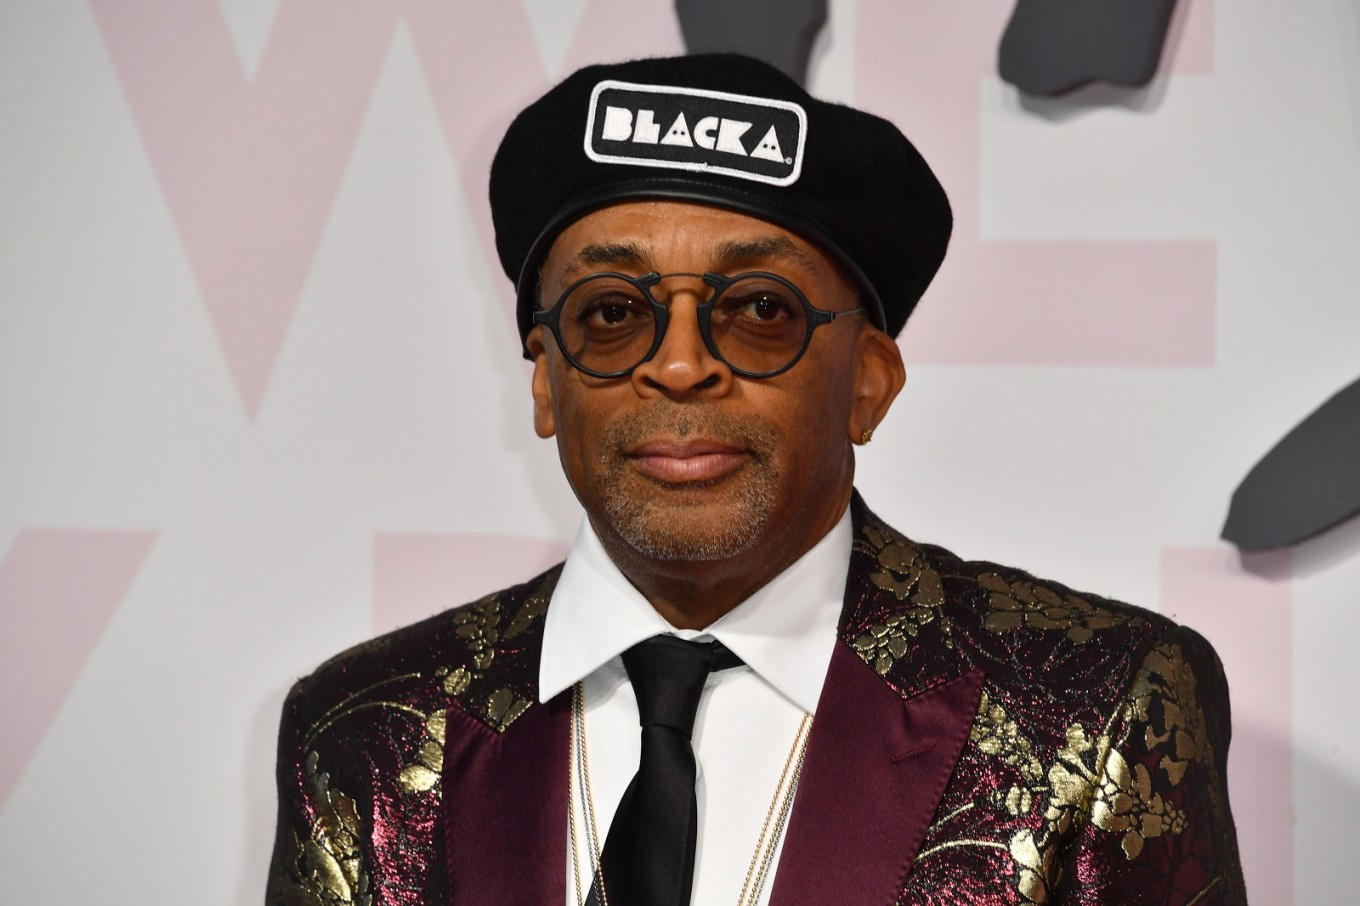 Director Spike Lee changes direction with musical about Viagra